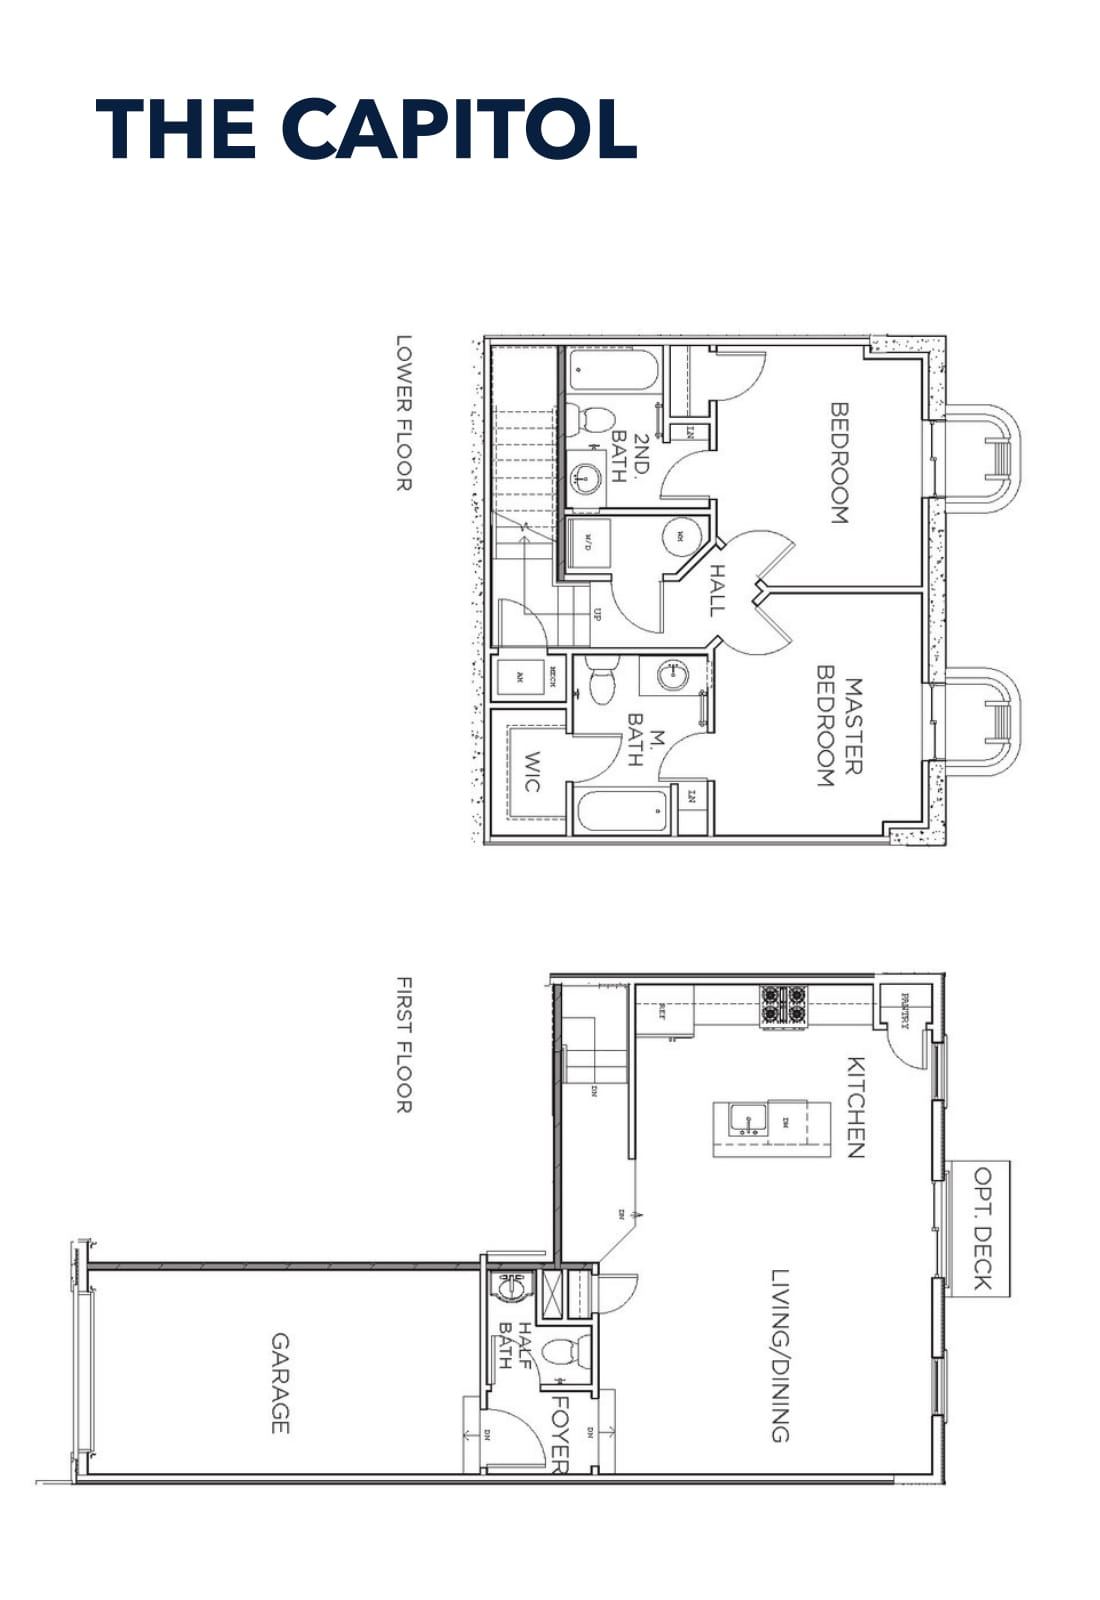 1 Available - 2bed 2.5bath w/Garage $336,900 base